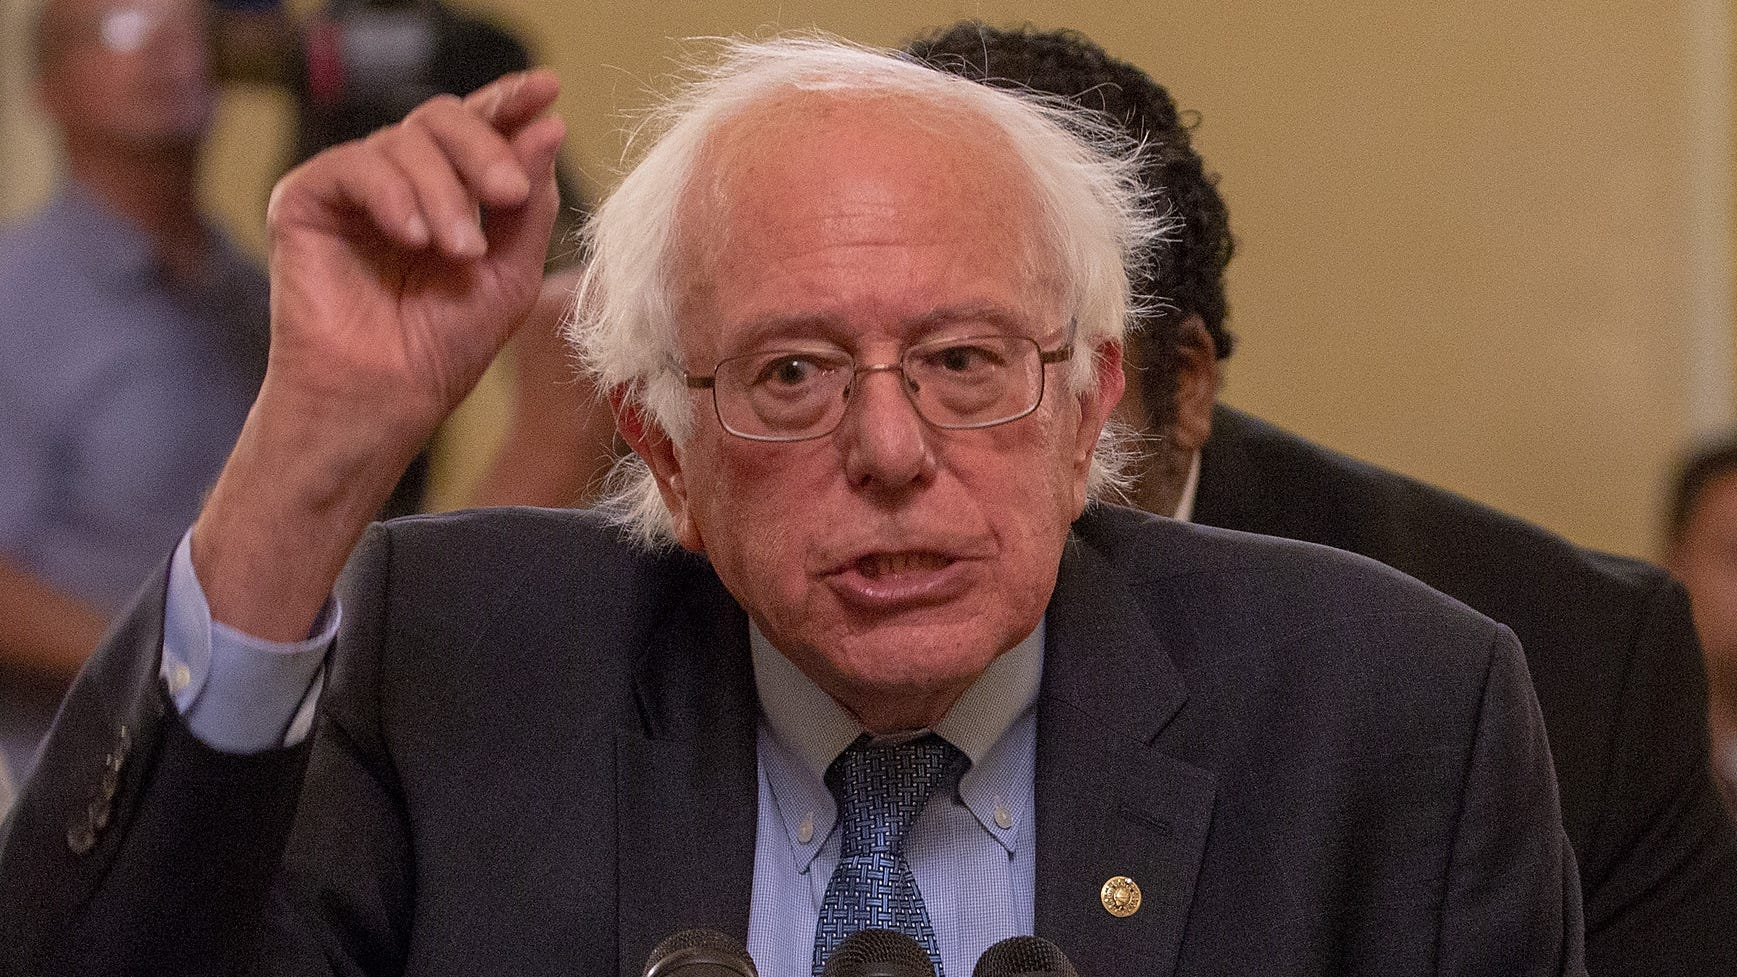 Sen. Bernie Sanders, I-Vt., attends a press conference on July 24, 2018 in Washington.